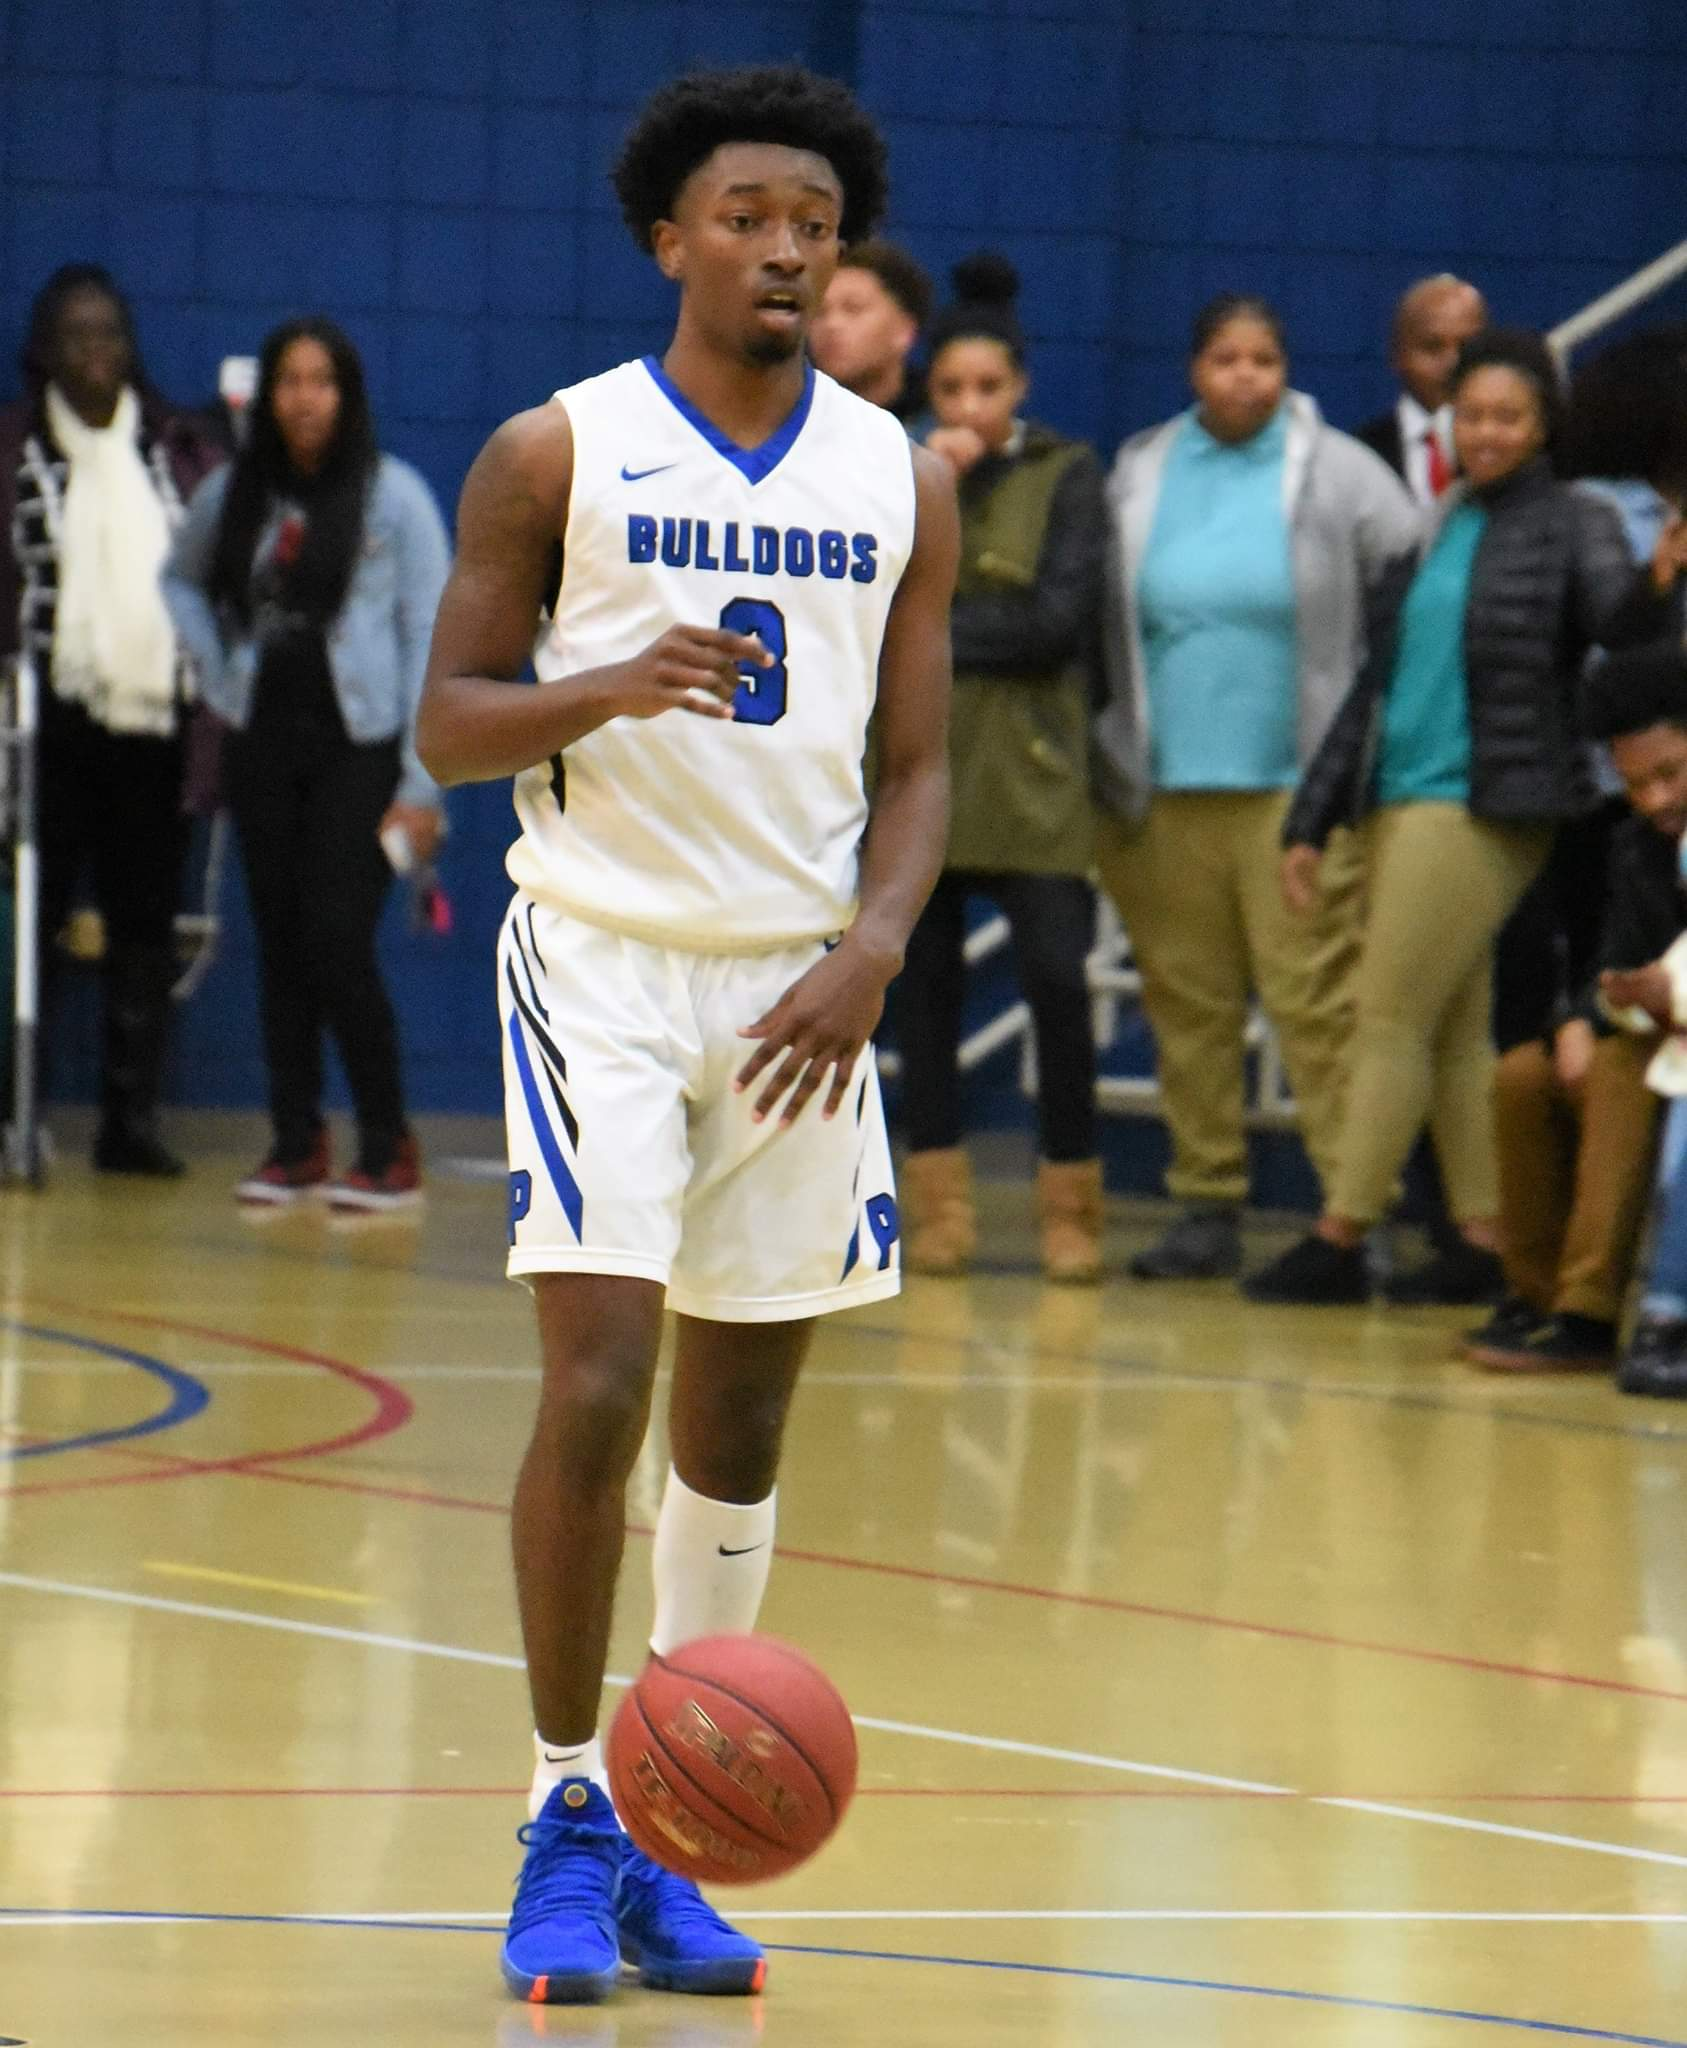 """Pitt Community College's Taji Moore got the start in Wednesday's game against Lenoir Community College and made a big impact in the Bulldogs' win. Photo by William """"Bud"""" Hardy / Neuse News"""